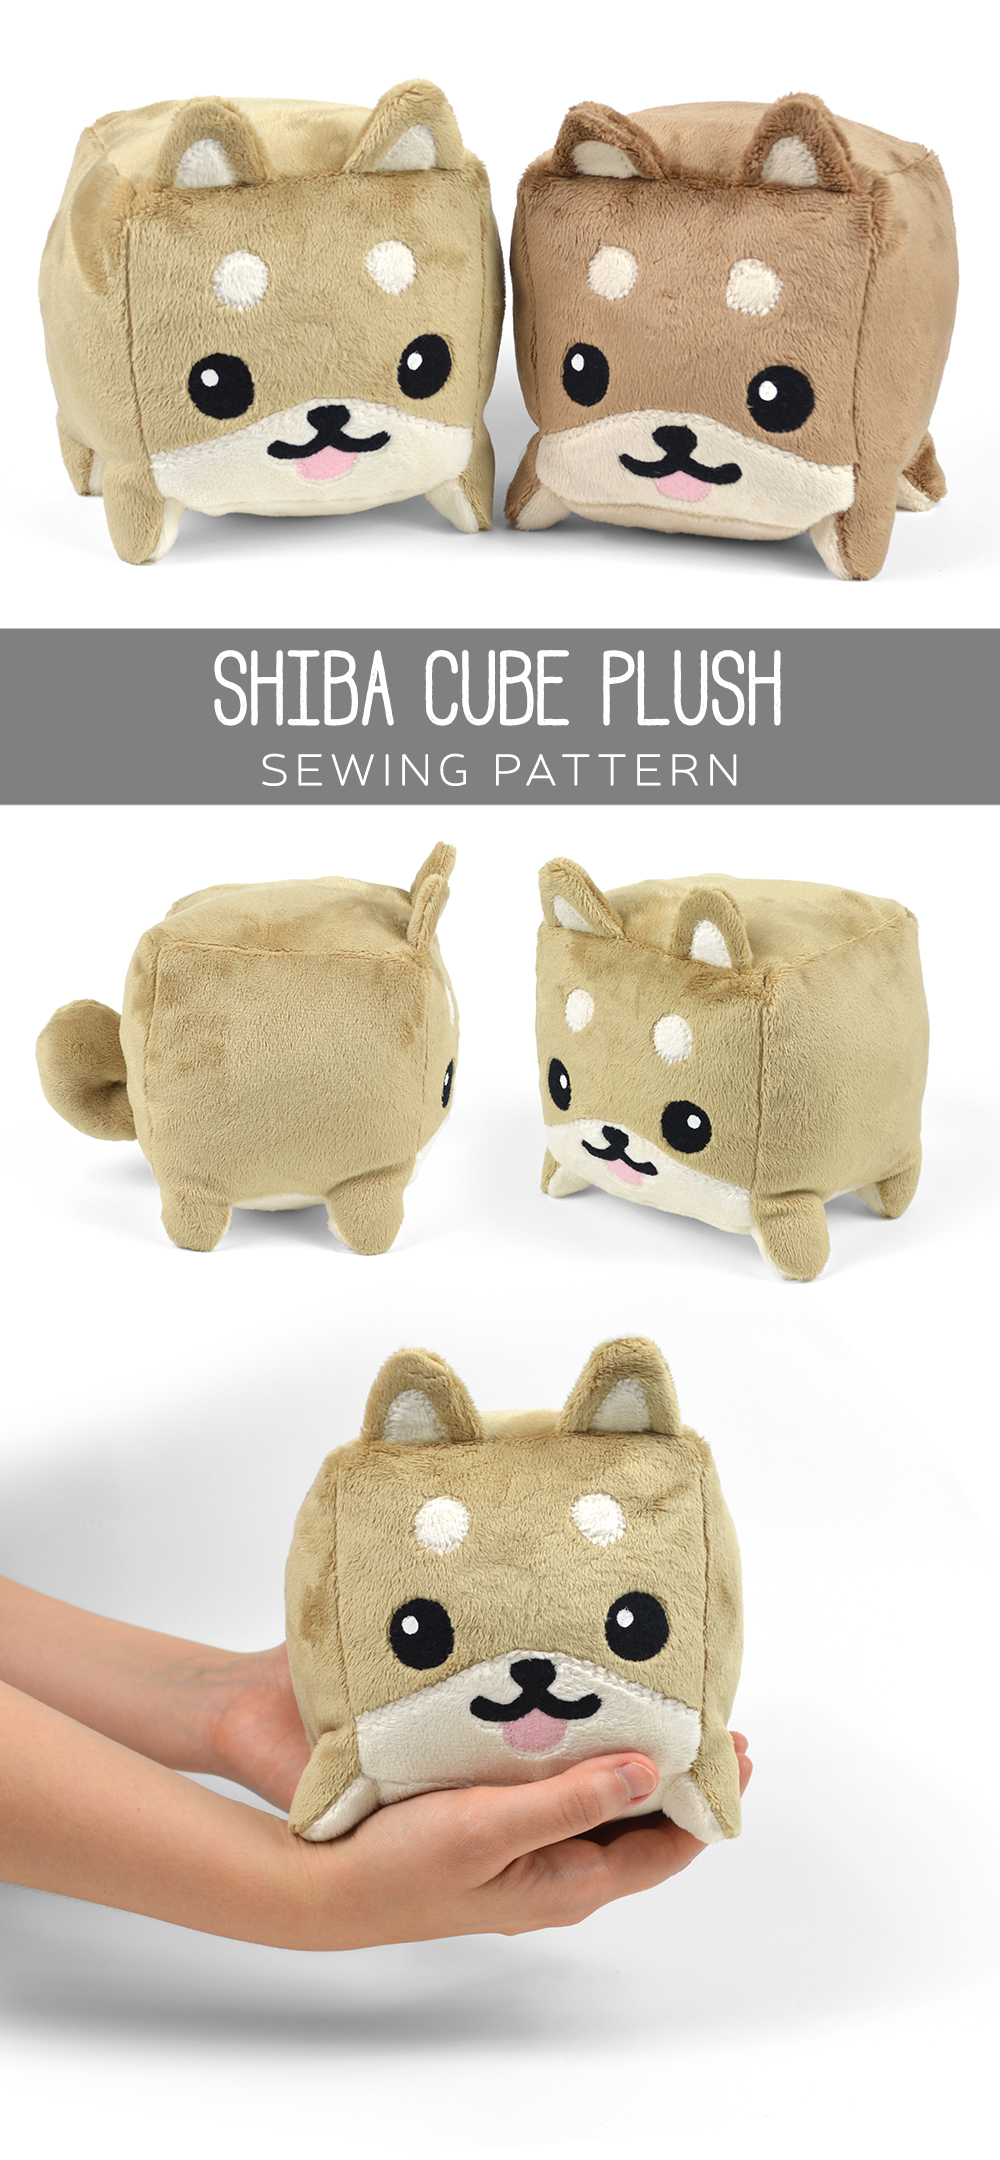 Free pattern friday shiba cube plush choly knight for Sewing templates for stuffed animals